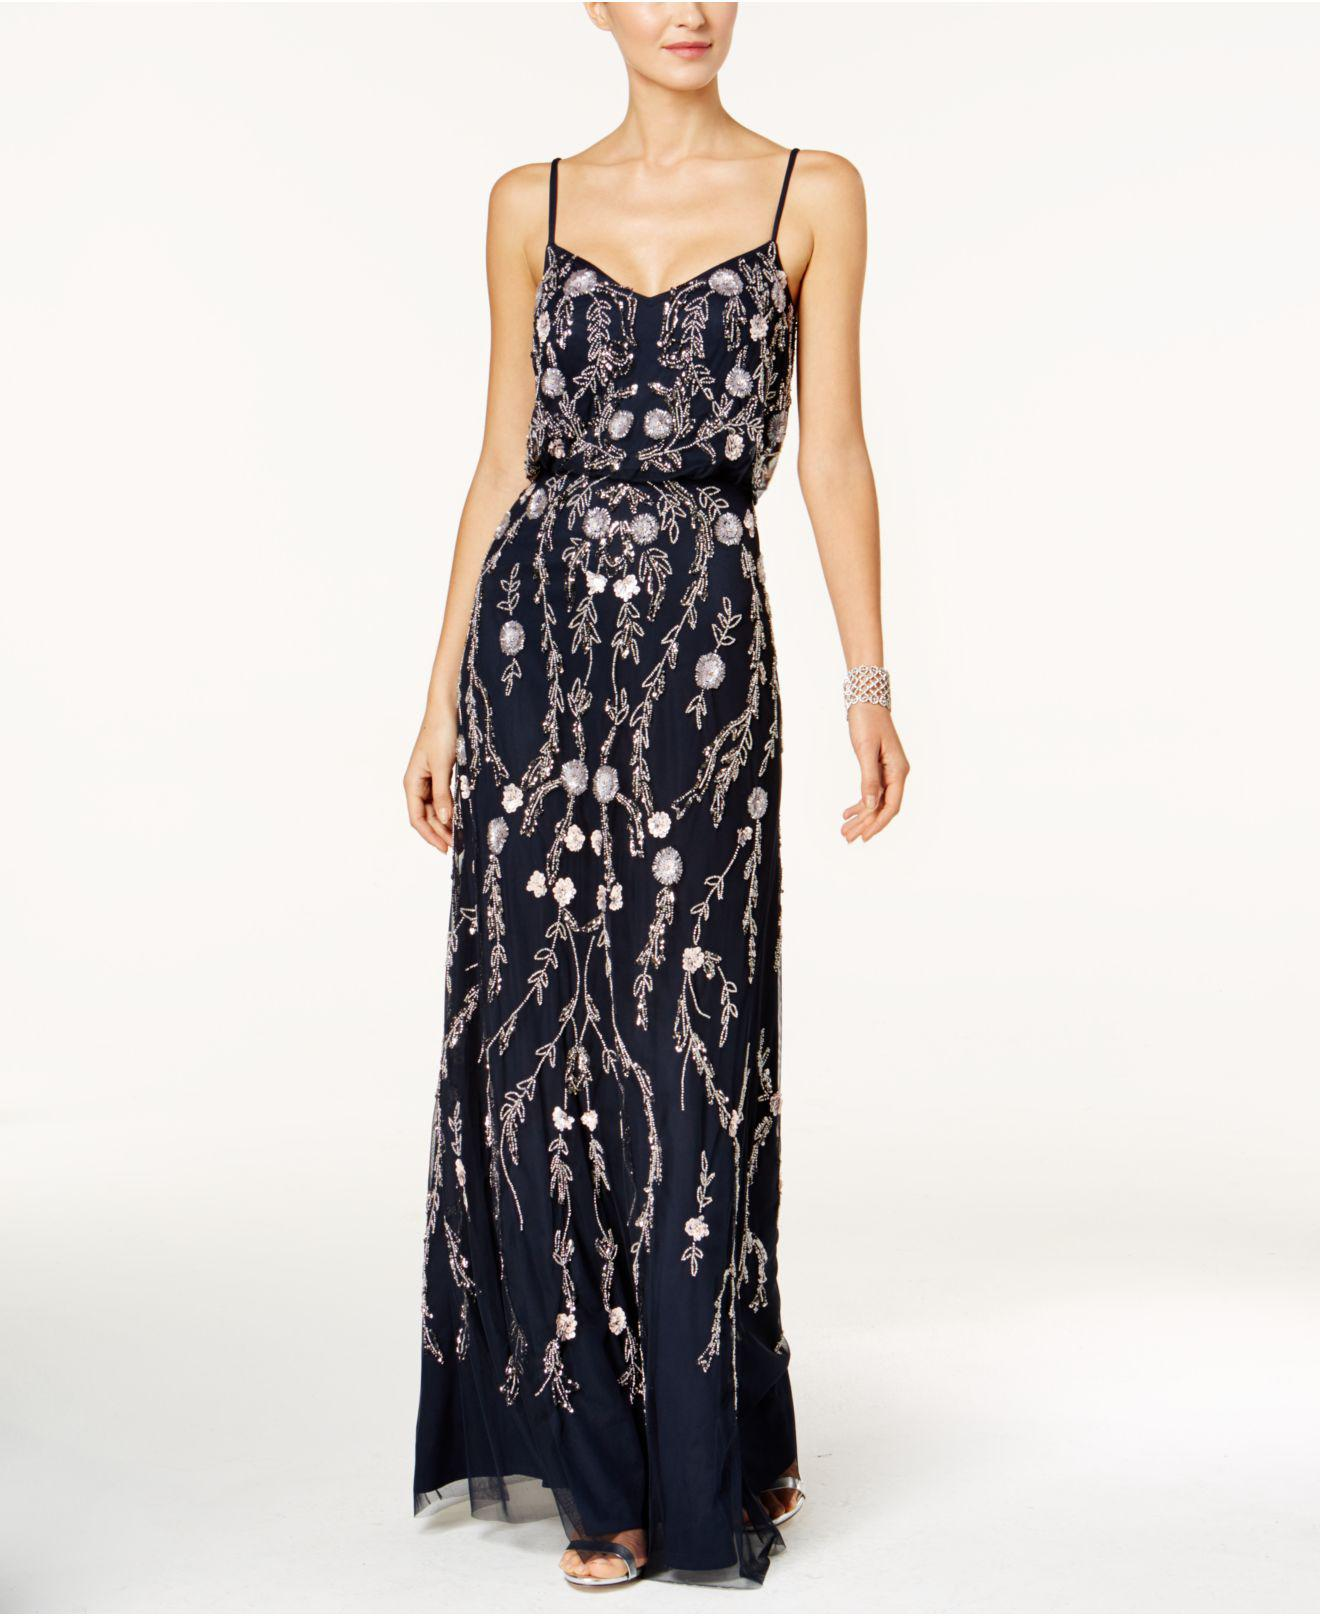 Lyst - Adrianna Papell Floral Beaded Blouson Gown in Blue - Save 56.0%